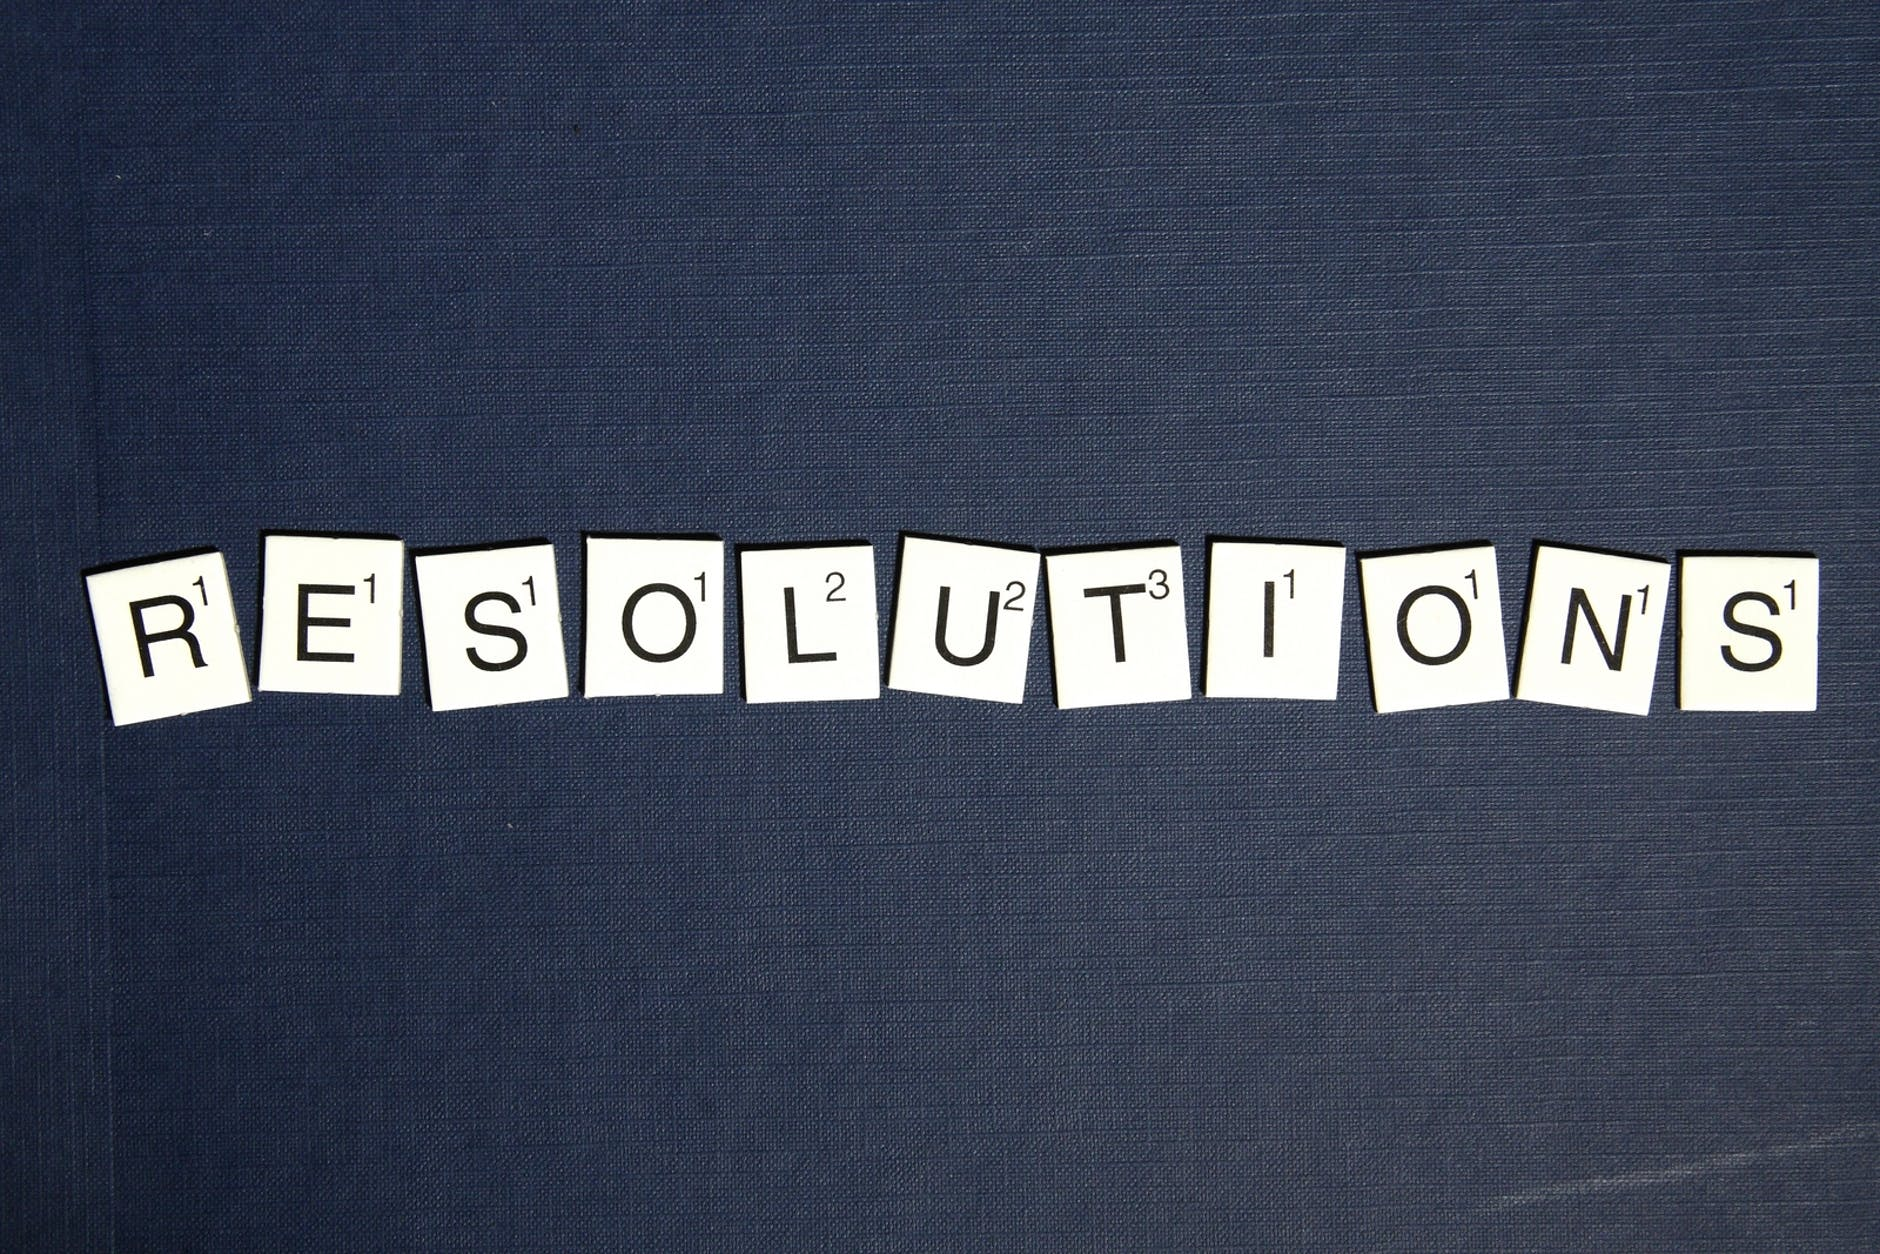 New Year's resolutions spelled out with Scrabble tiles.